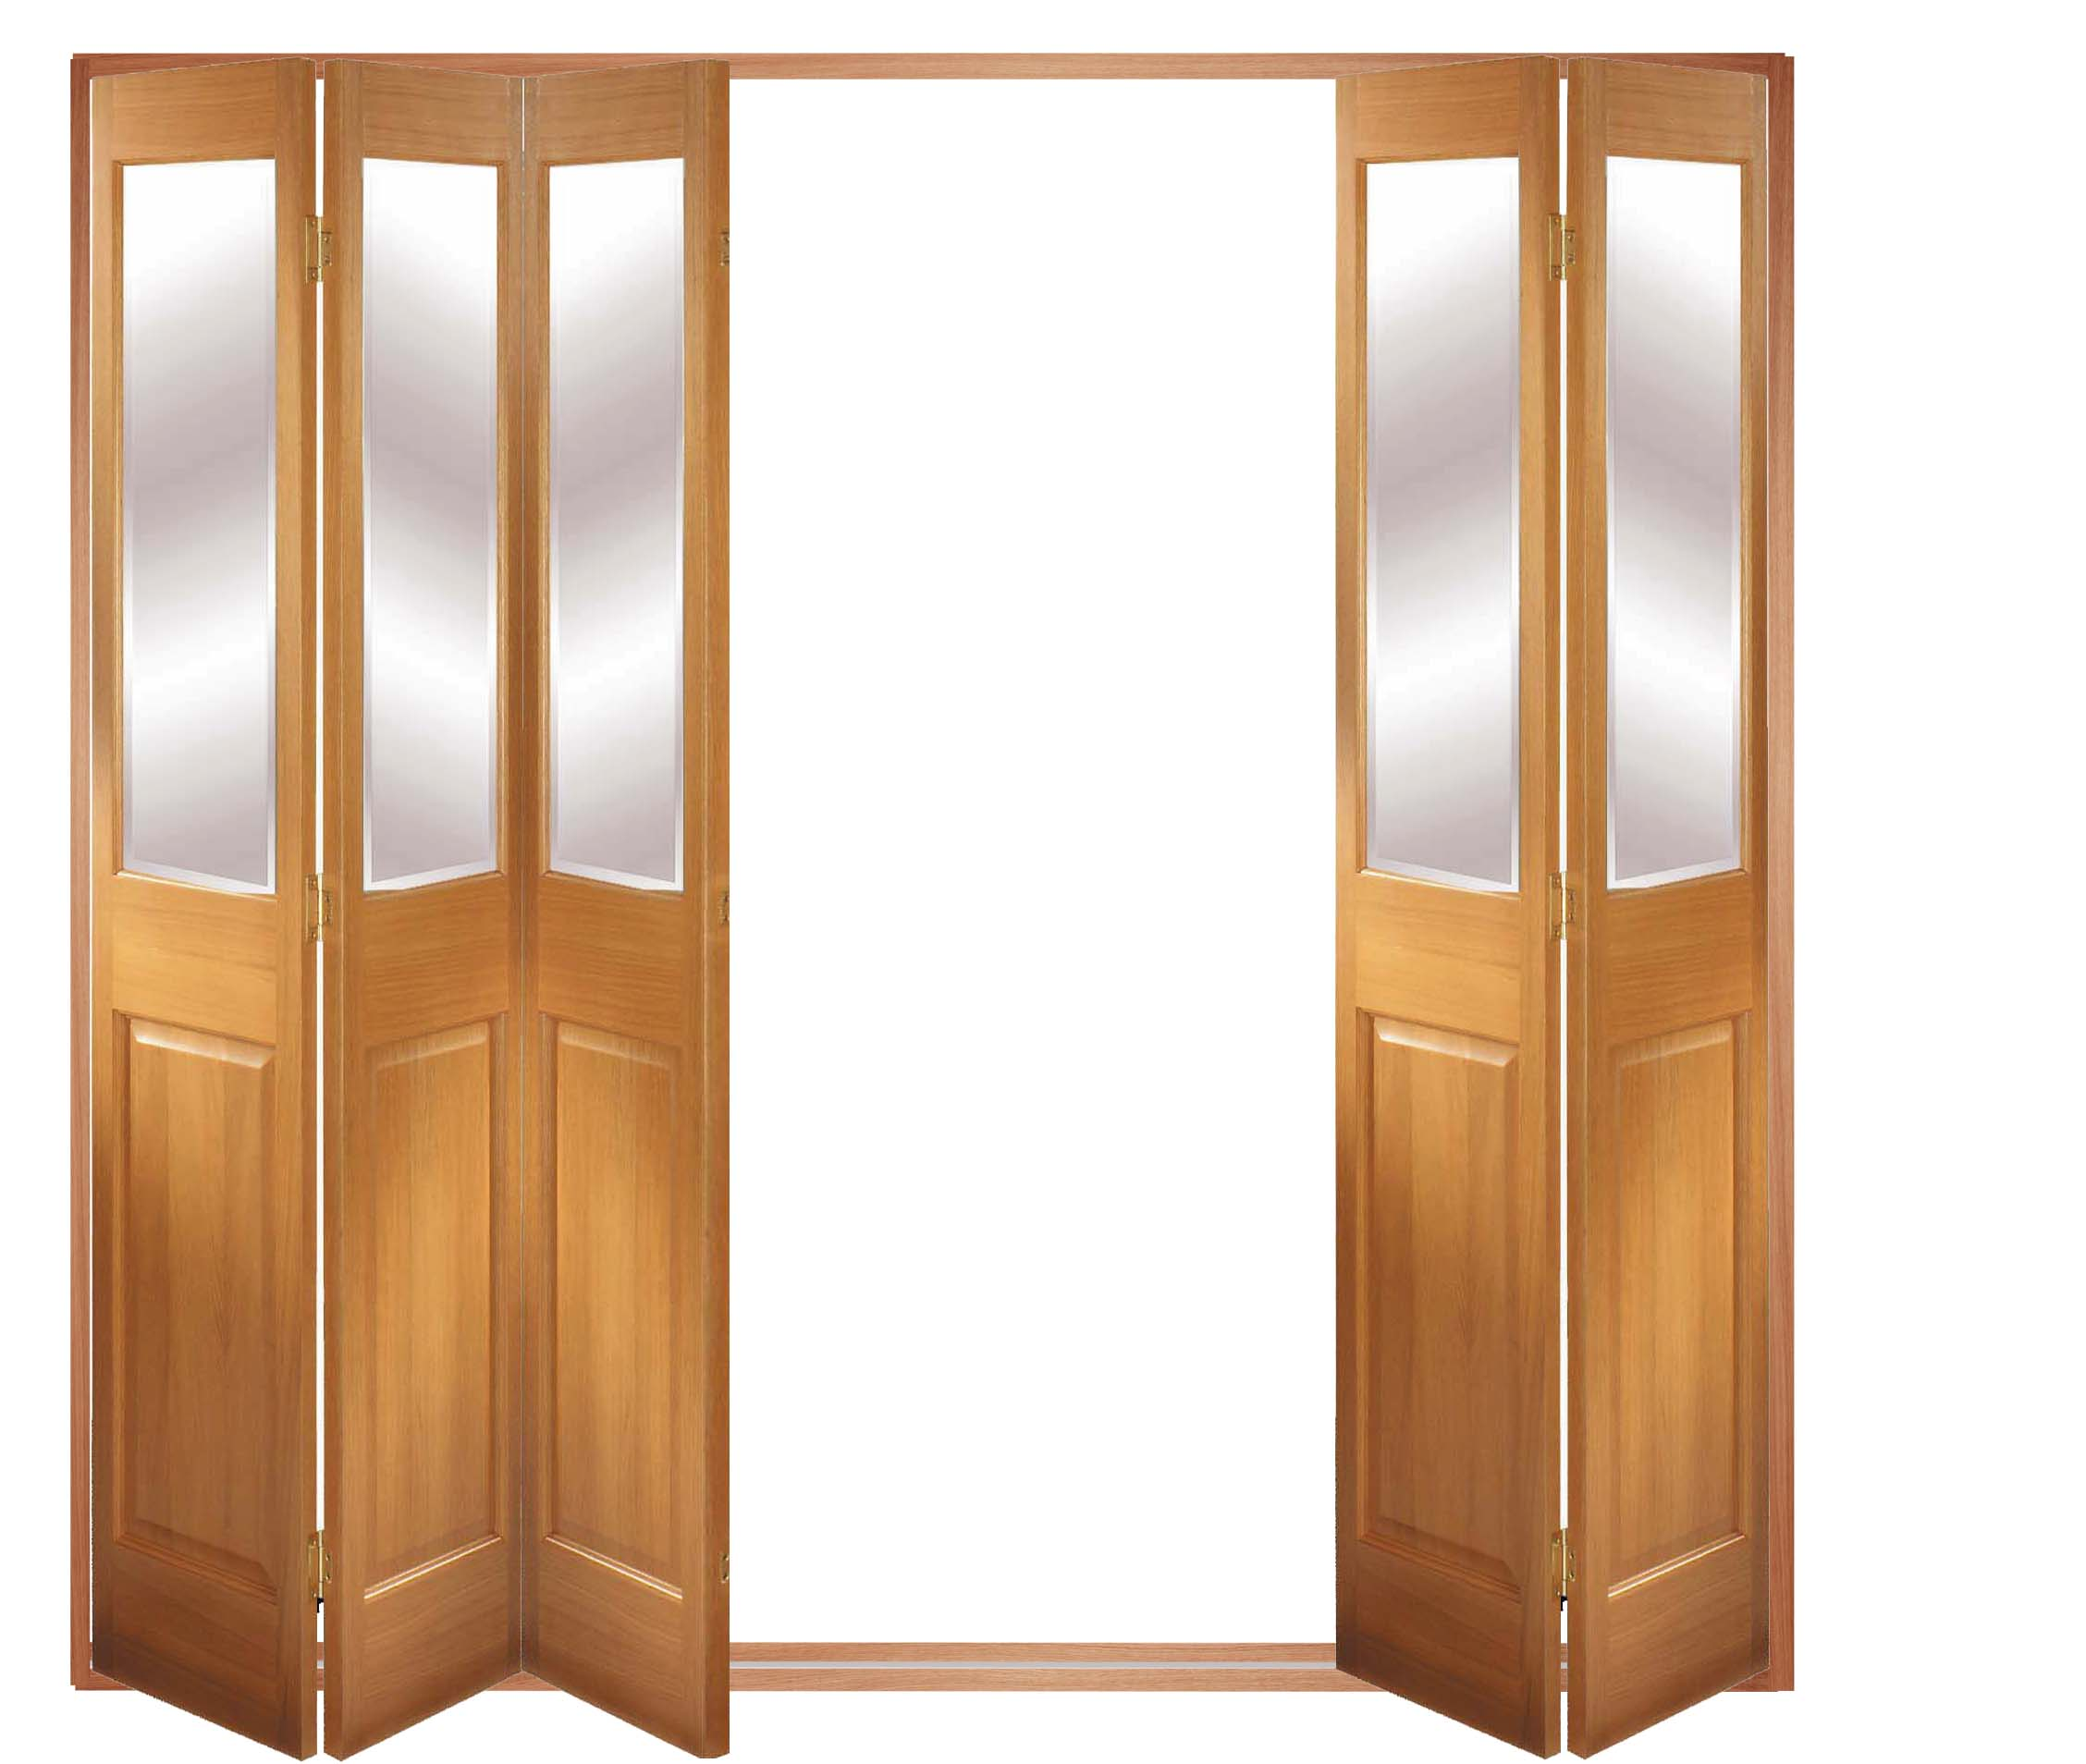 Reasons To Install Interior Sliding Folding Doors